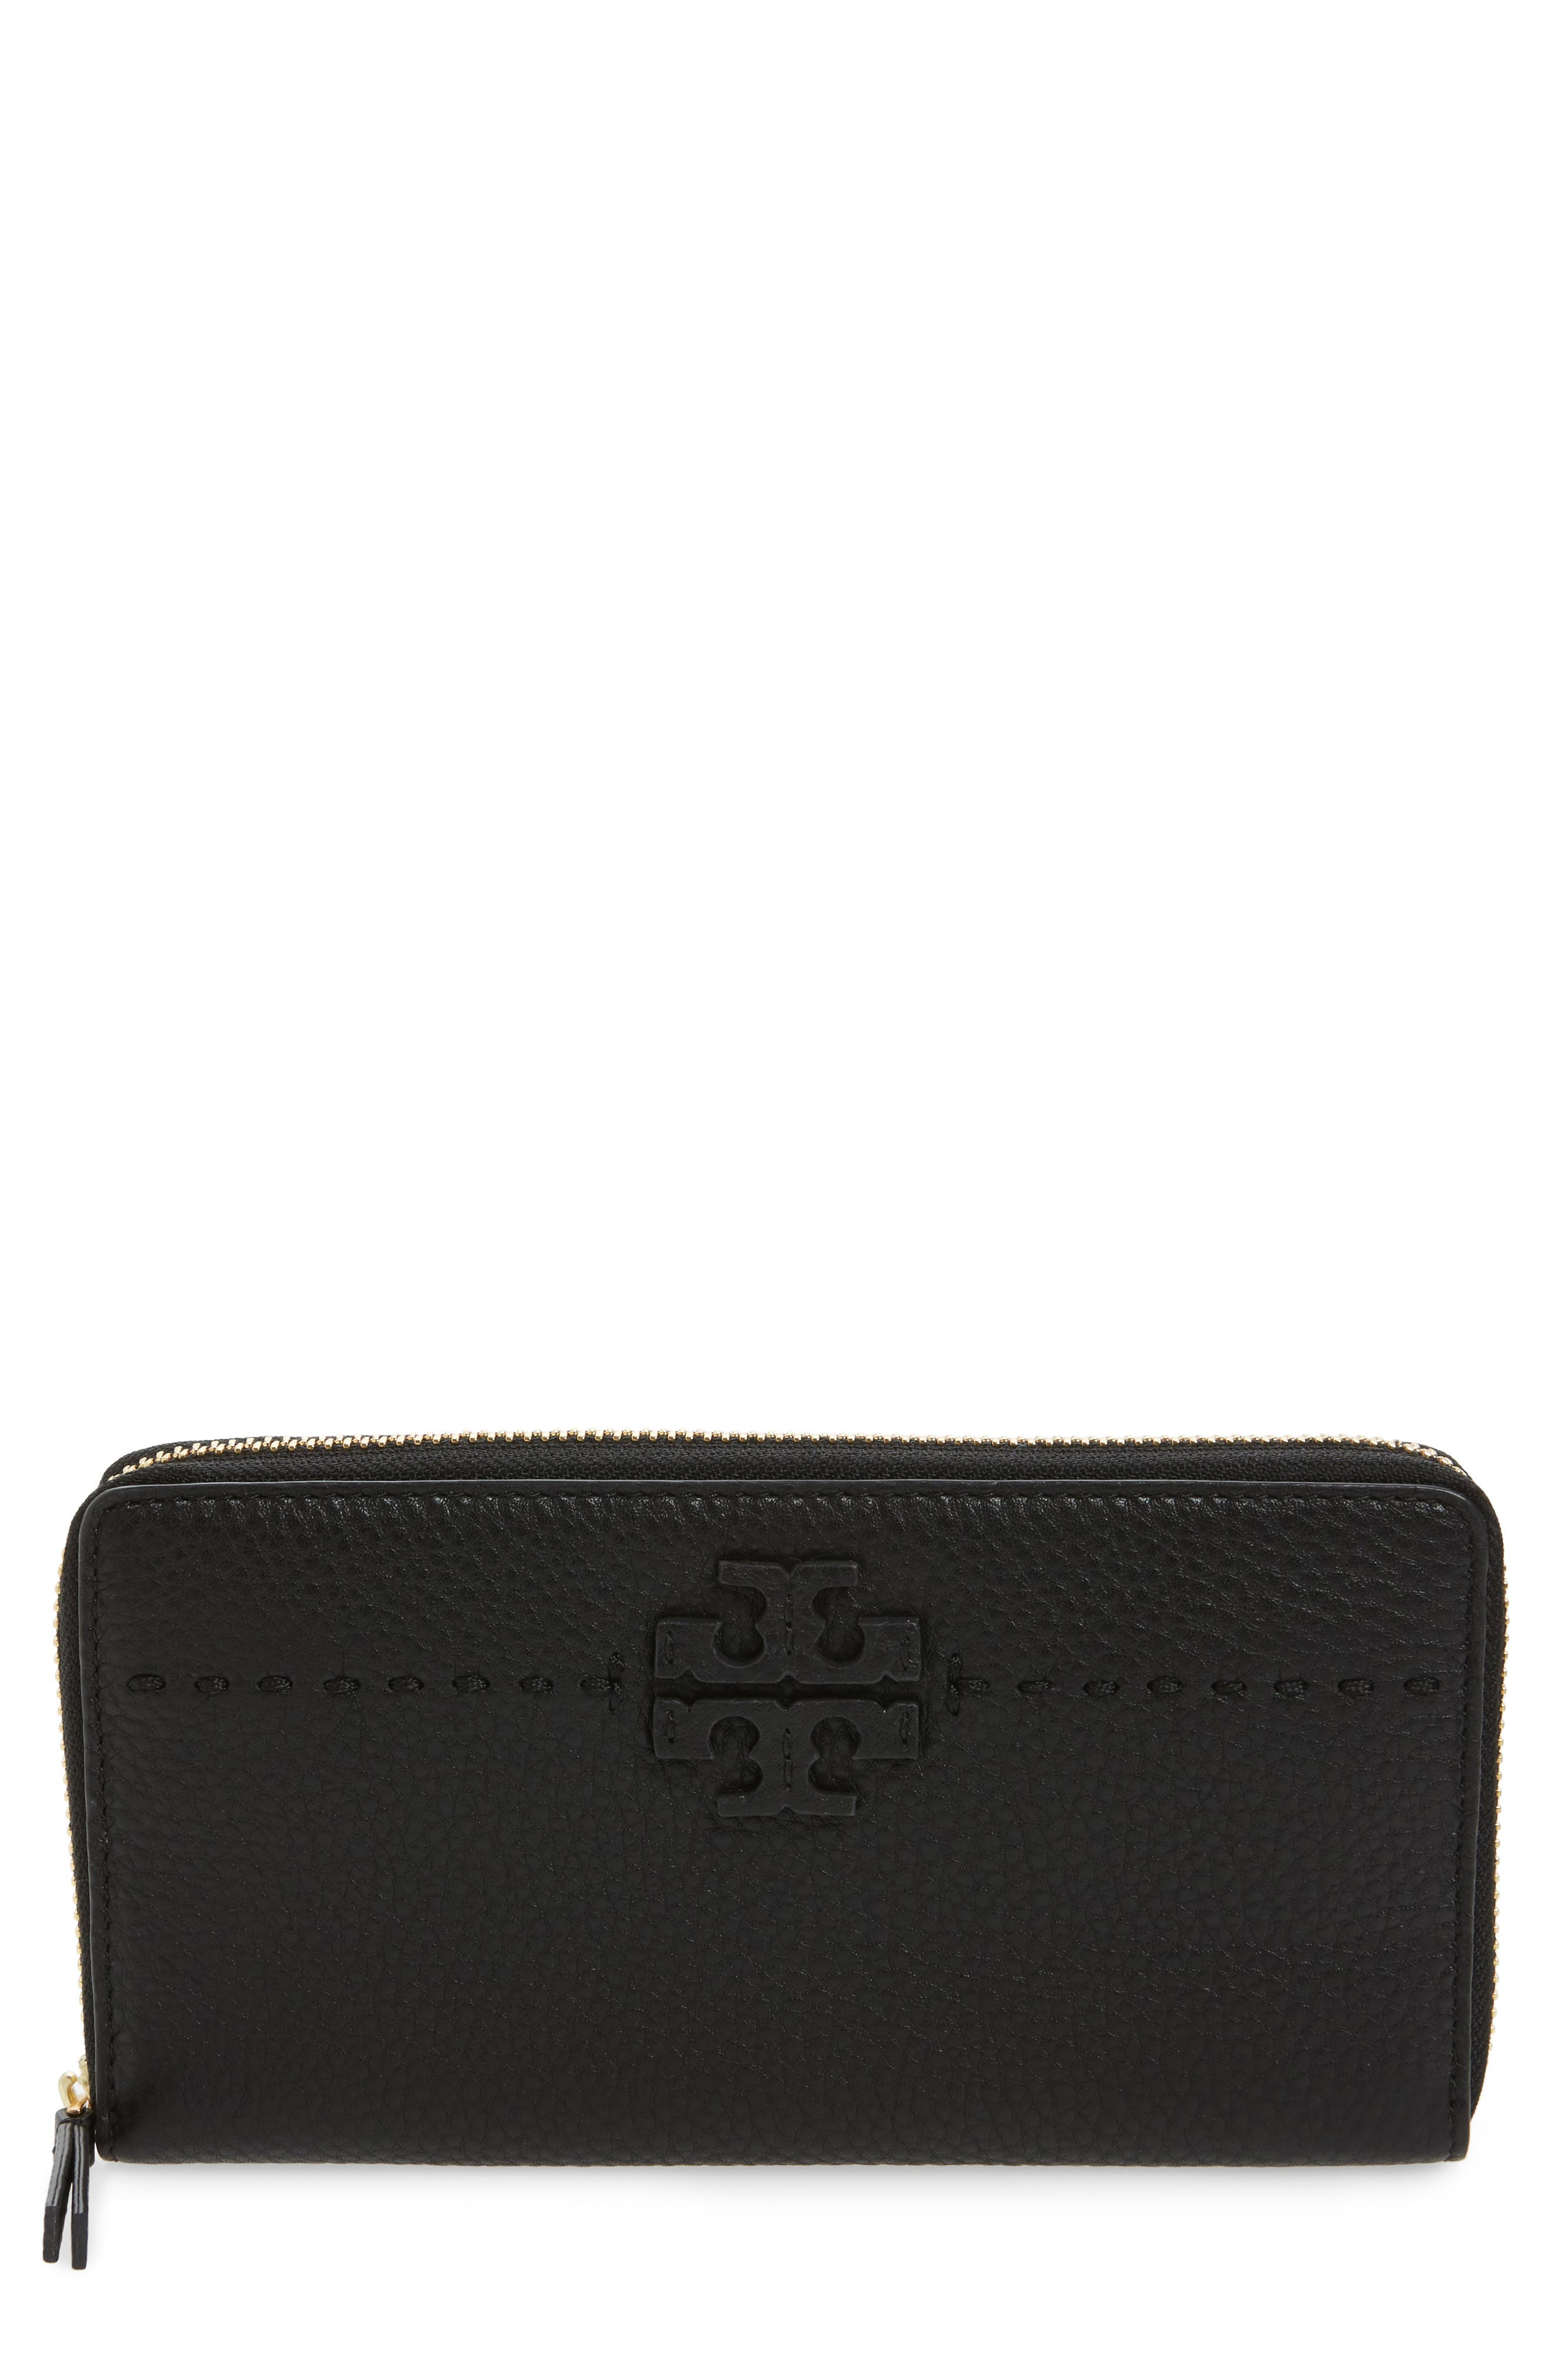 McGraw Leather Continental Zip Wallet,                             Main thumbnail 1, color,                             BLACK